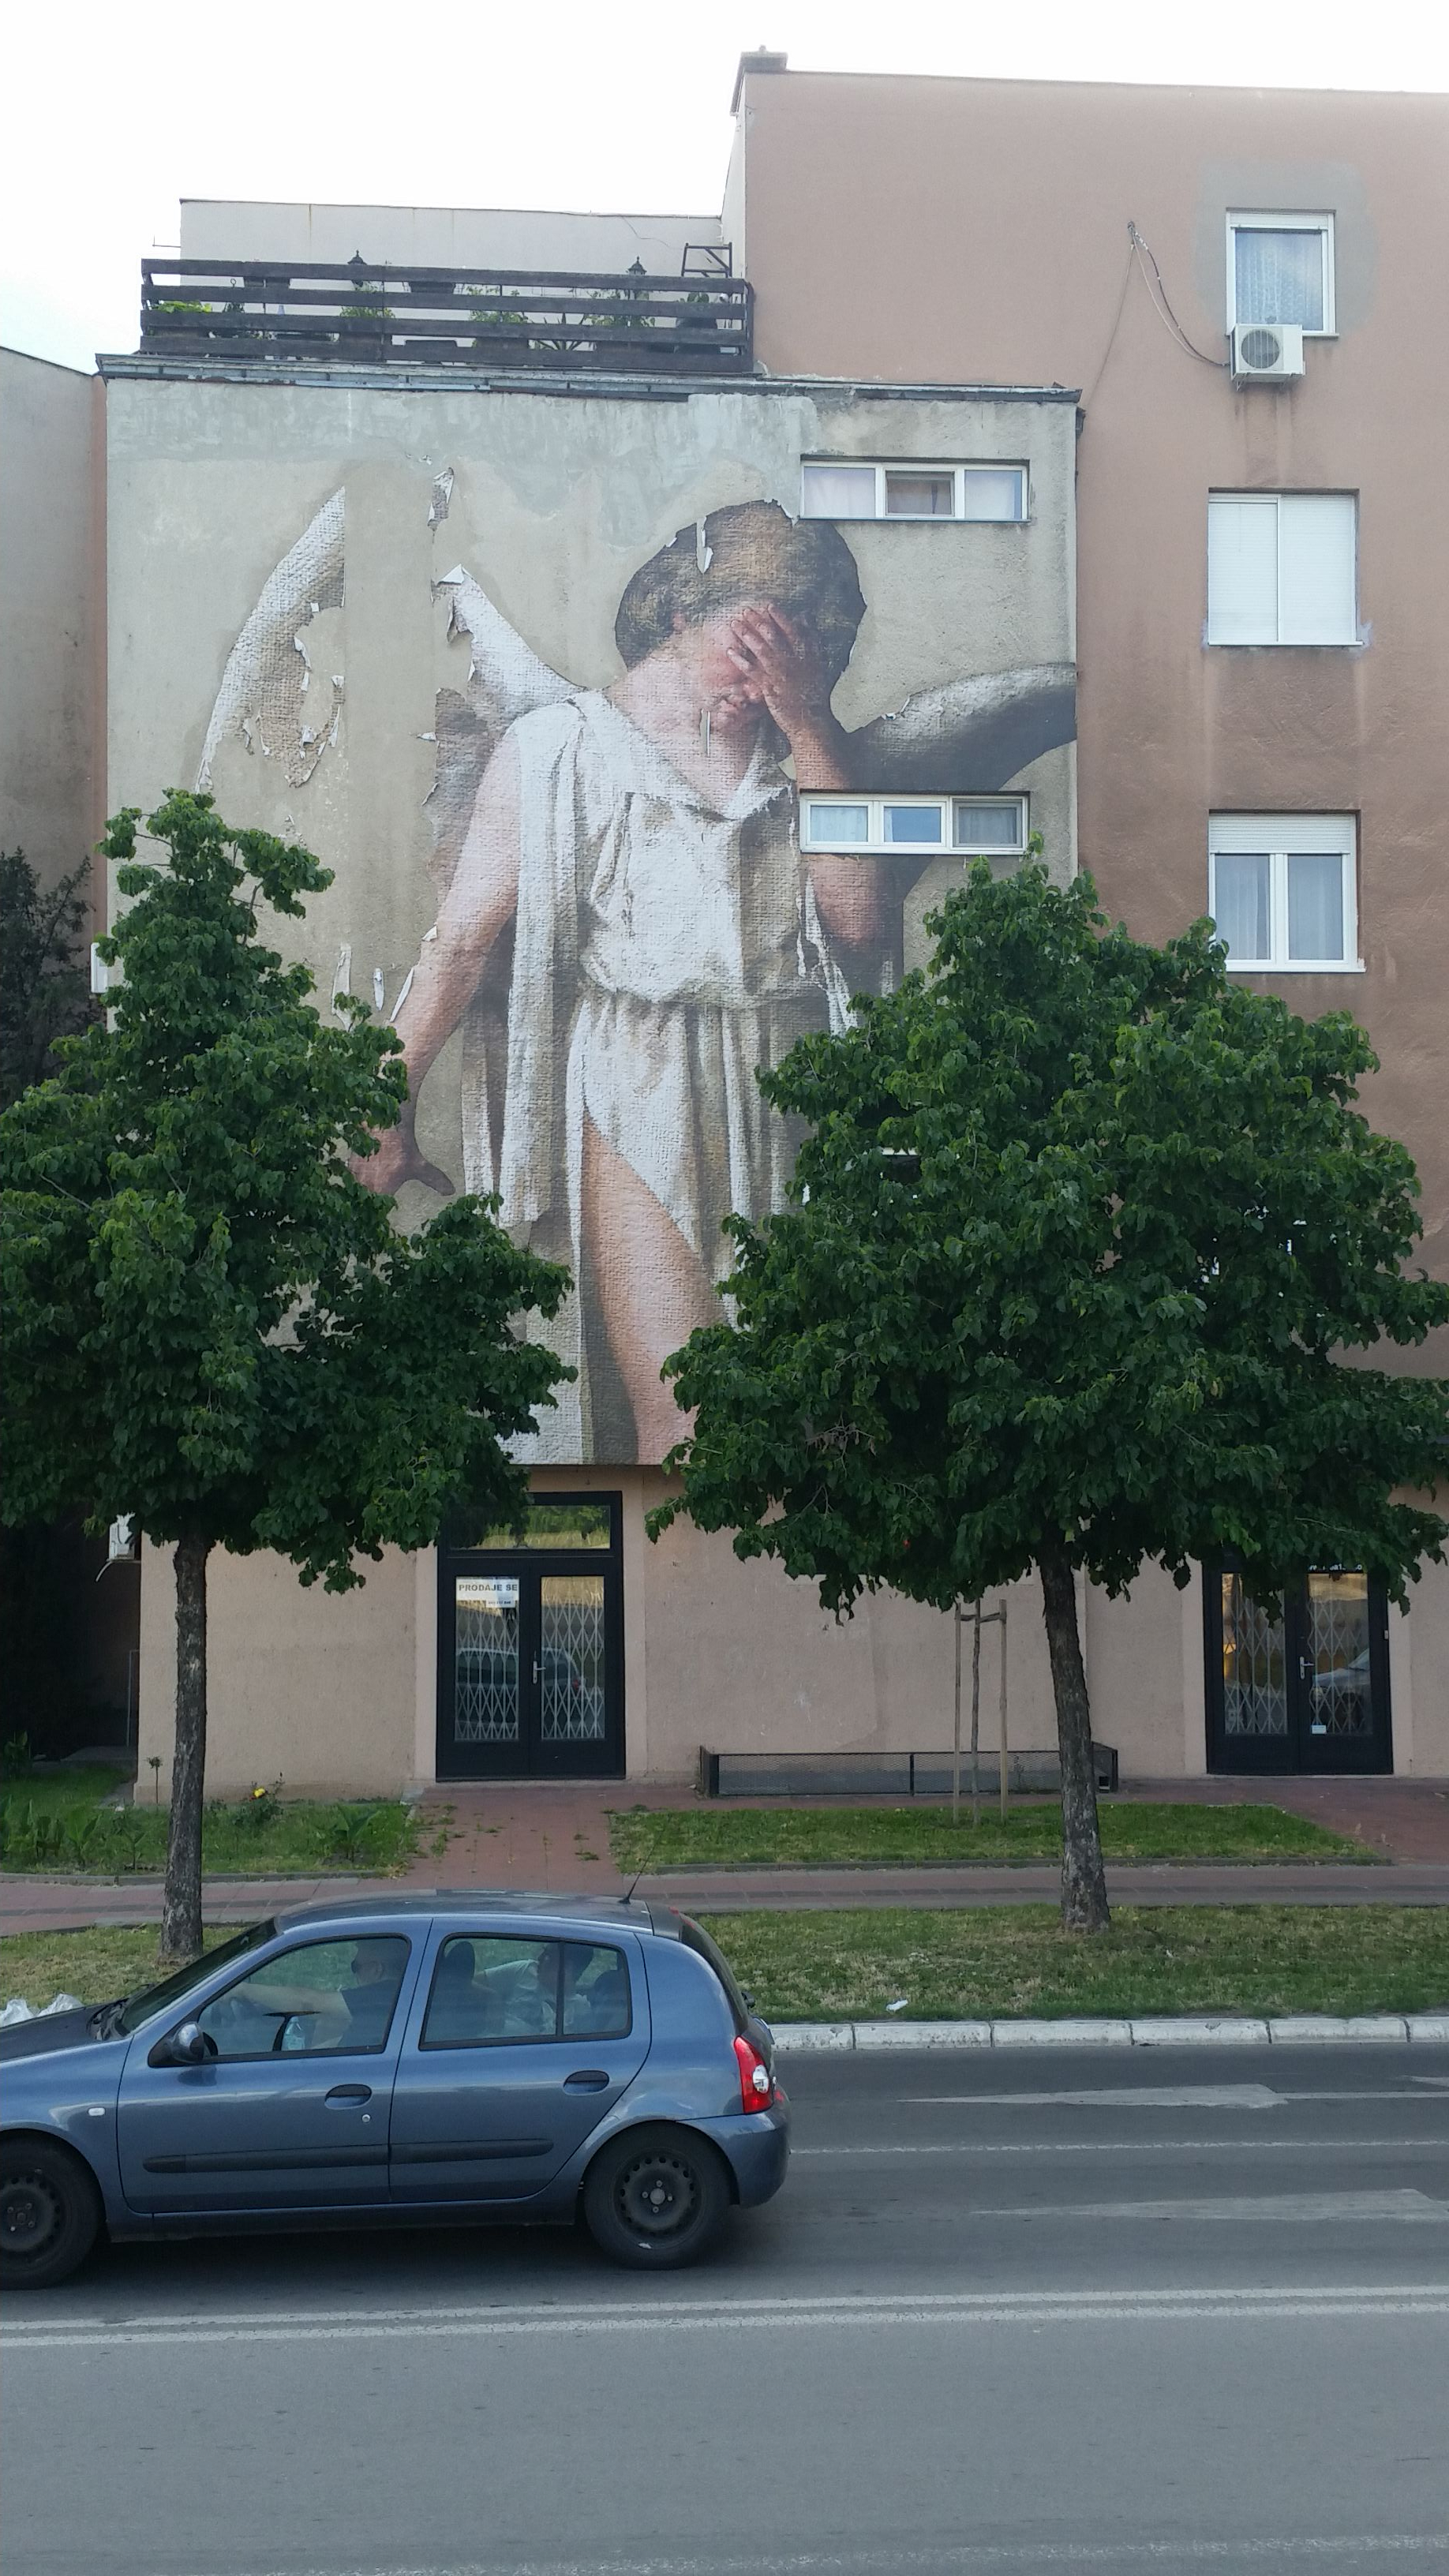 This angel mural in the Serbian City of Novi Sad serves as a reminder of the Yugoslav war.